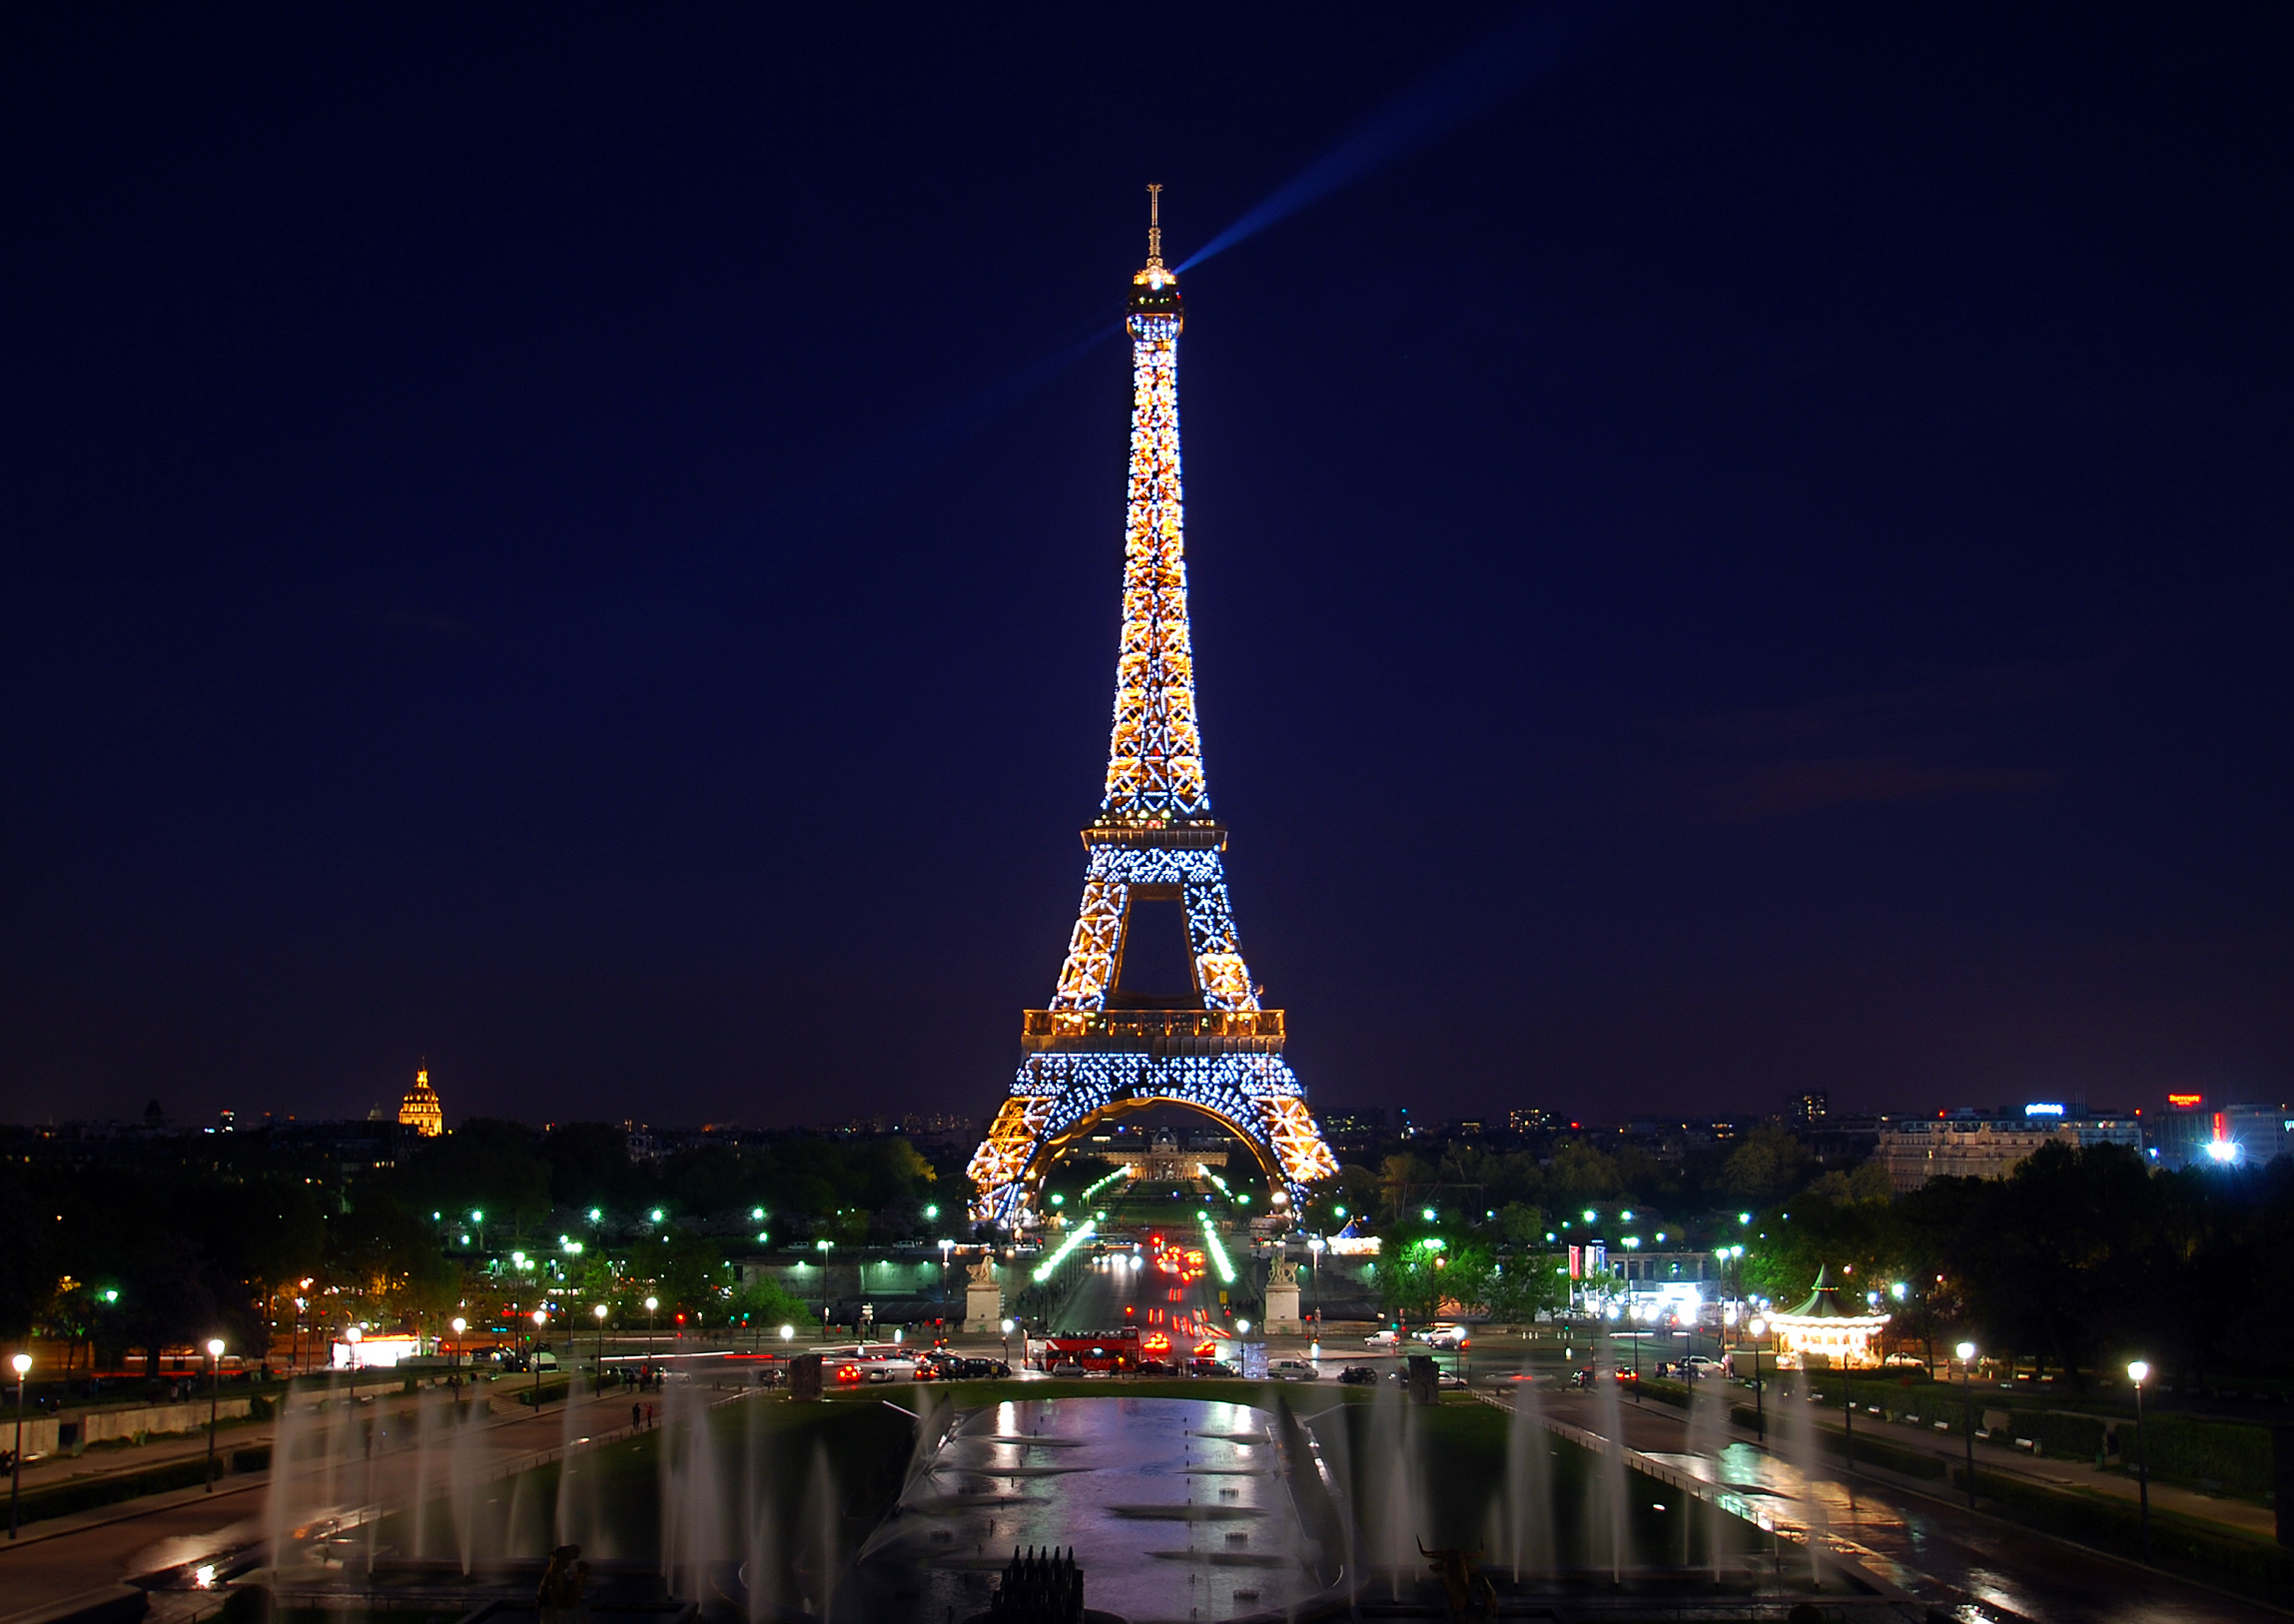 Eiffel Tower25